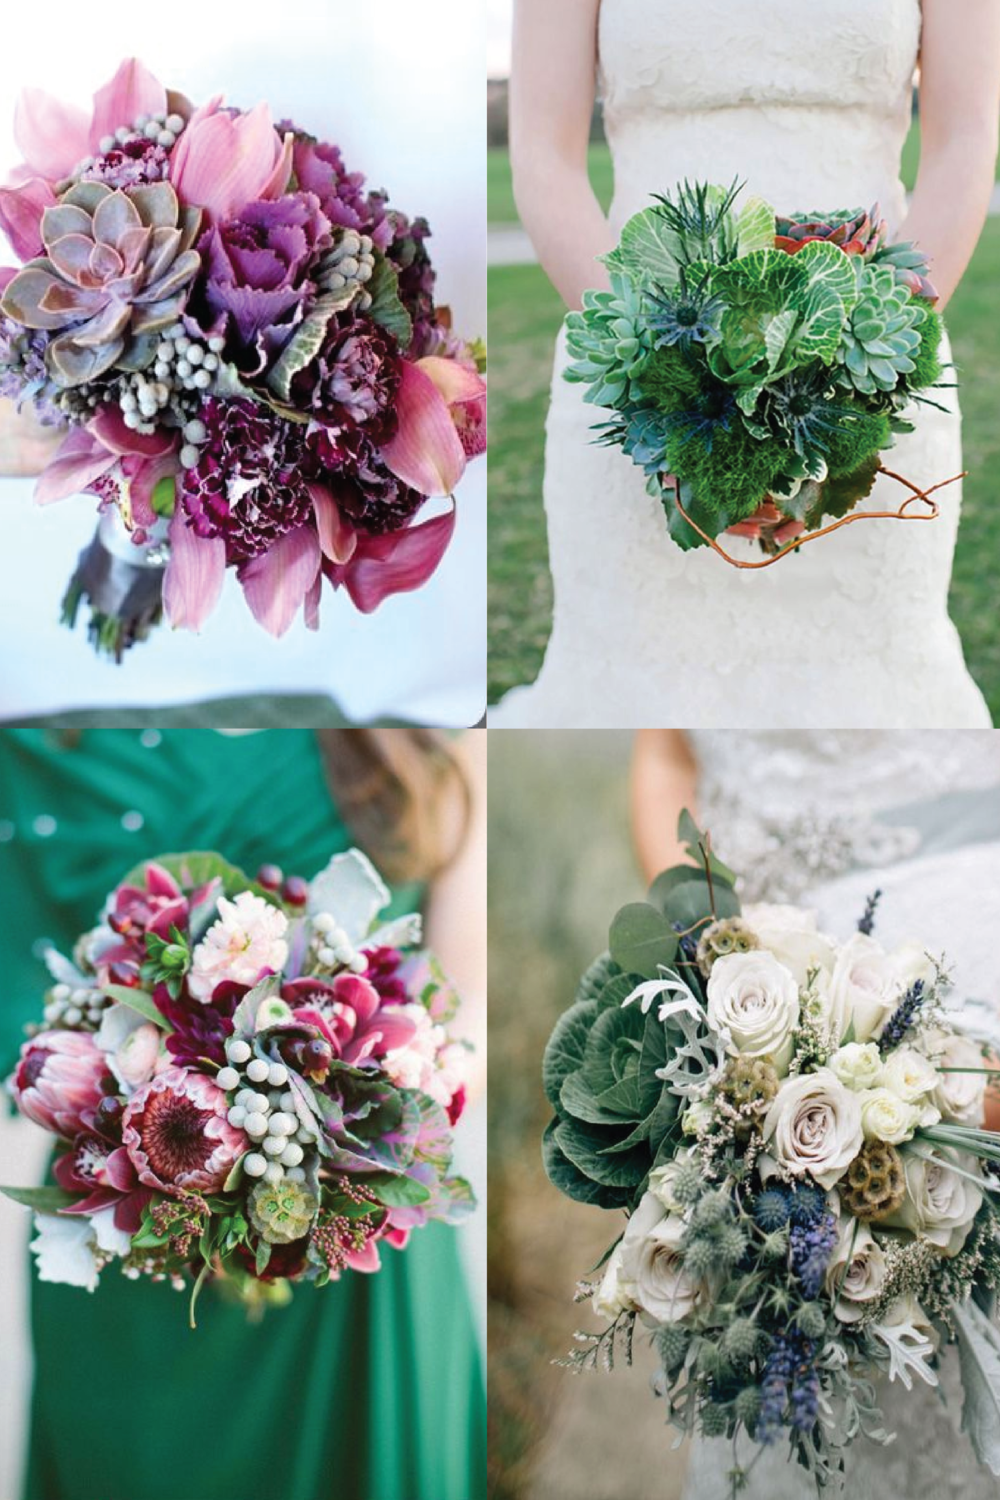 From clockwise, from top left: flowers by Lush Couture Design; photo by Elissar; flowers by Spellbound Flowers and photo by Bethany Small; photo via Intimate Weddings.